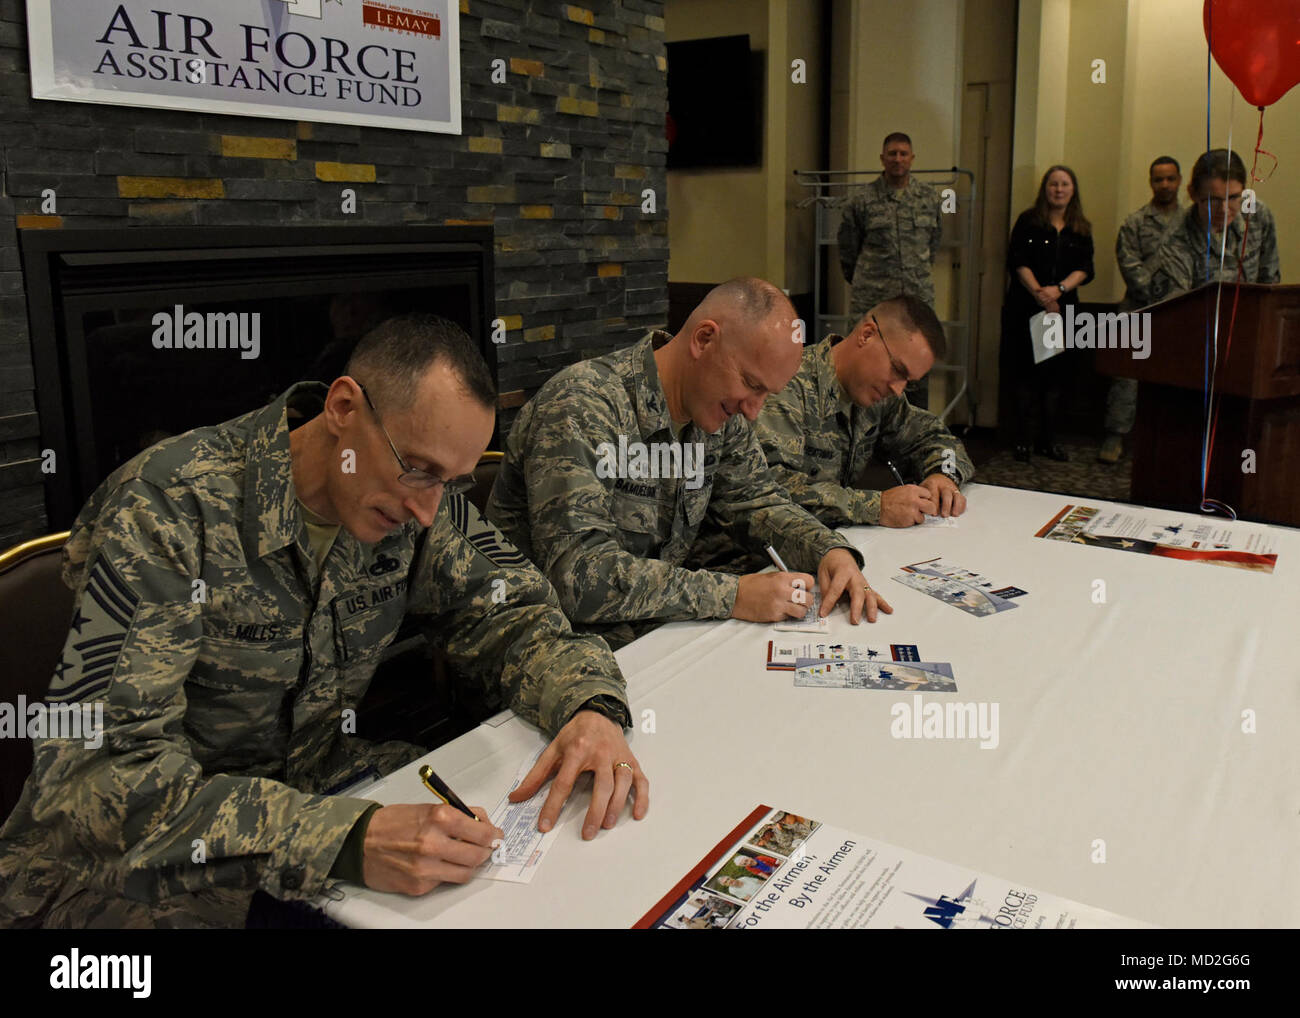 (from left) Chief Master Sgt. Lee Mills, 92nd Air Refueling Wing command chief, Col. Ryan Samuelson, 92nd ARW commander, and Col. J. Scot Heathman, 92nd ARW vice commander, make the first donations during the Air Force Assistance Fund kick-off breakfast at Fairchild Air Force Base, Washington, March 26, 2018. The Air Force Aid Society directs the AFAF and works to support and enhance the U.S. Air Force mission by providing emergency financial assistance, education support and community programs to Airmen. - Stock Image